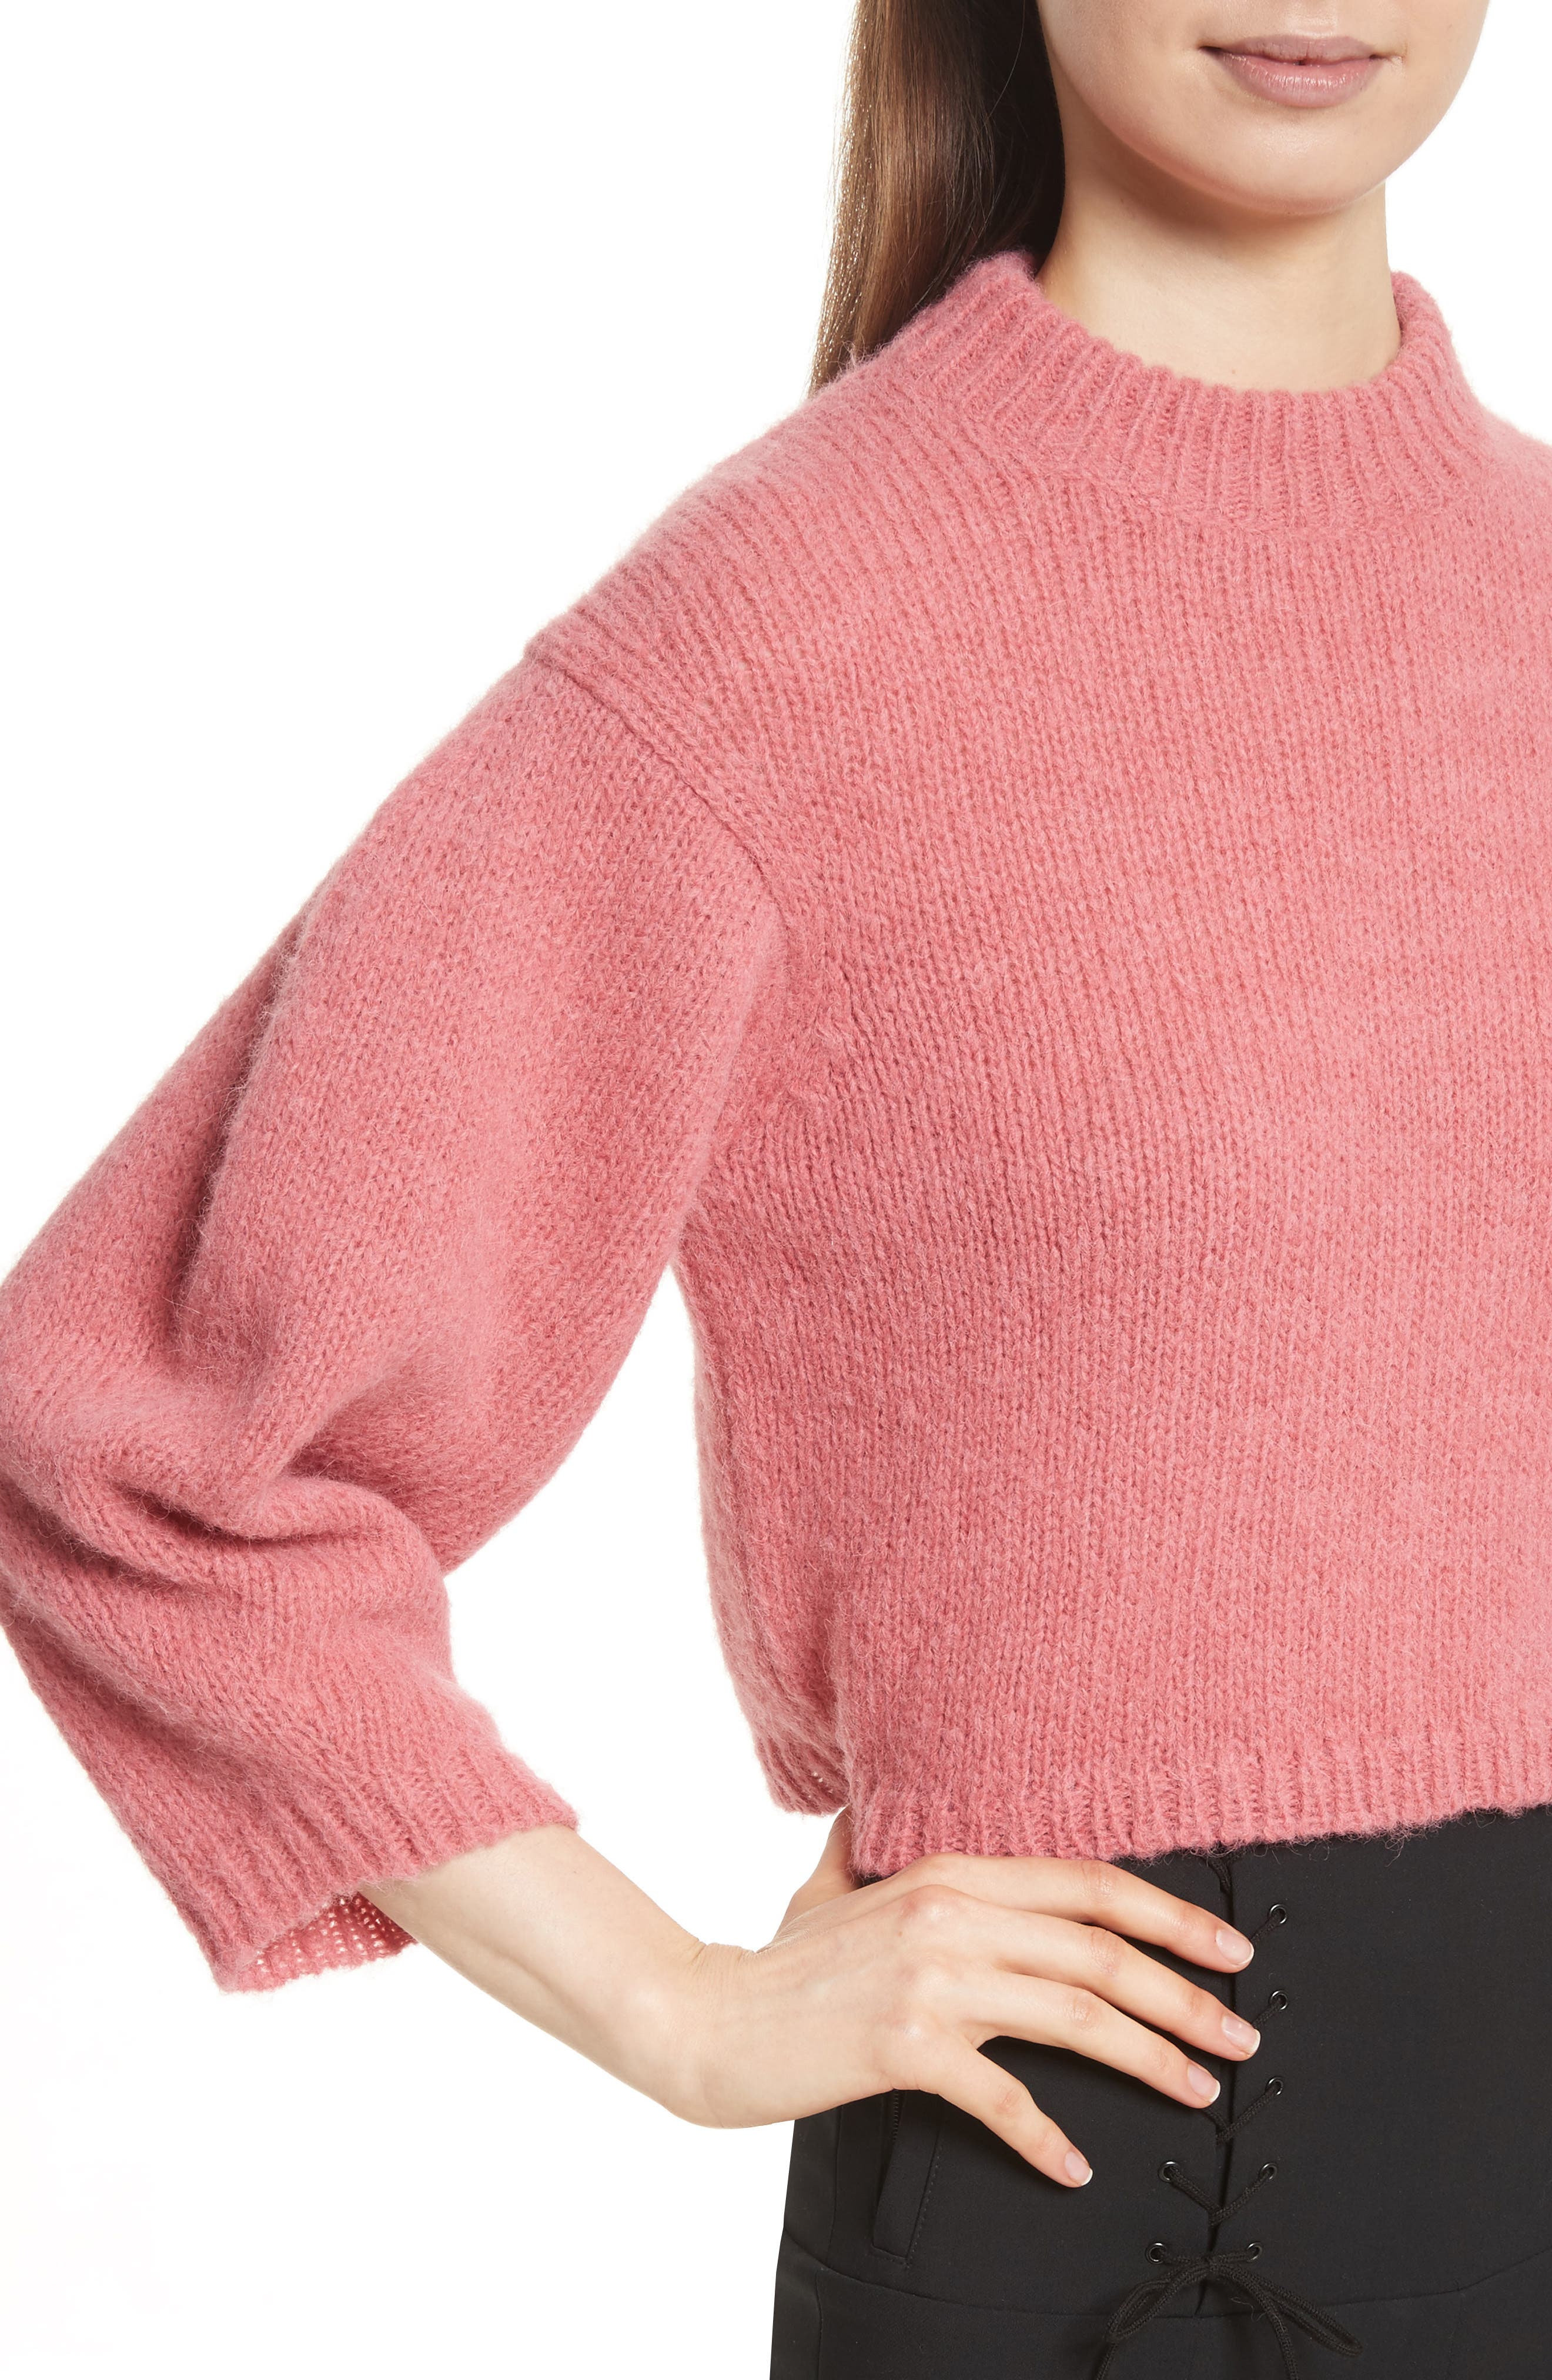 Cozette Cropped Pullover,                             Alternate thumbnail 4, color,                             695